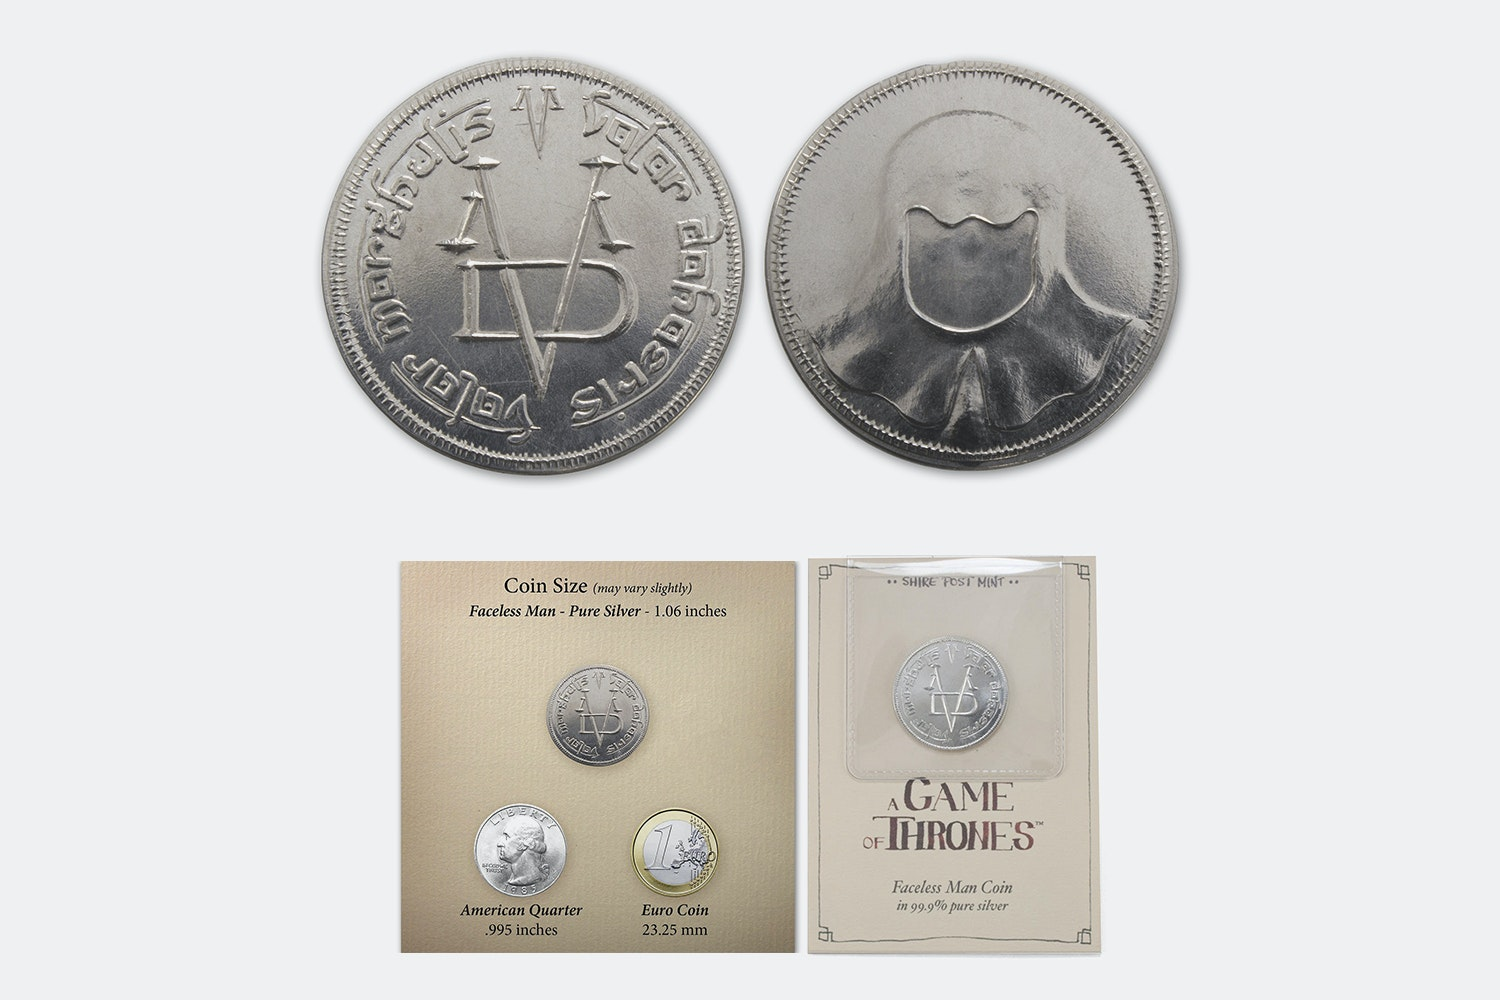 Game of Thrones Collectible Silver Coins (2-Pack)